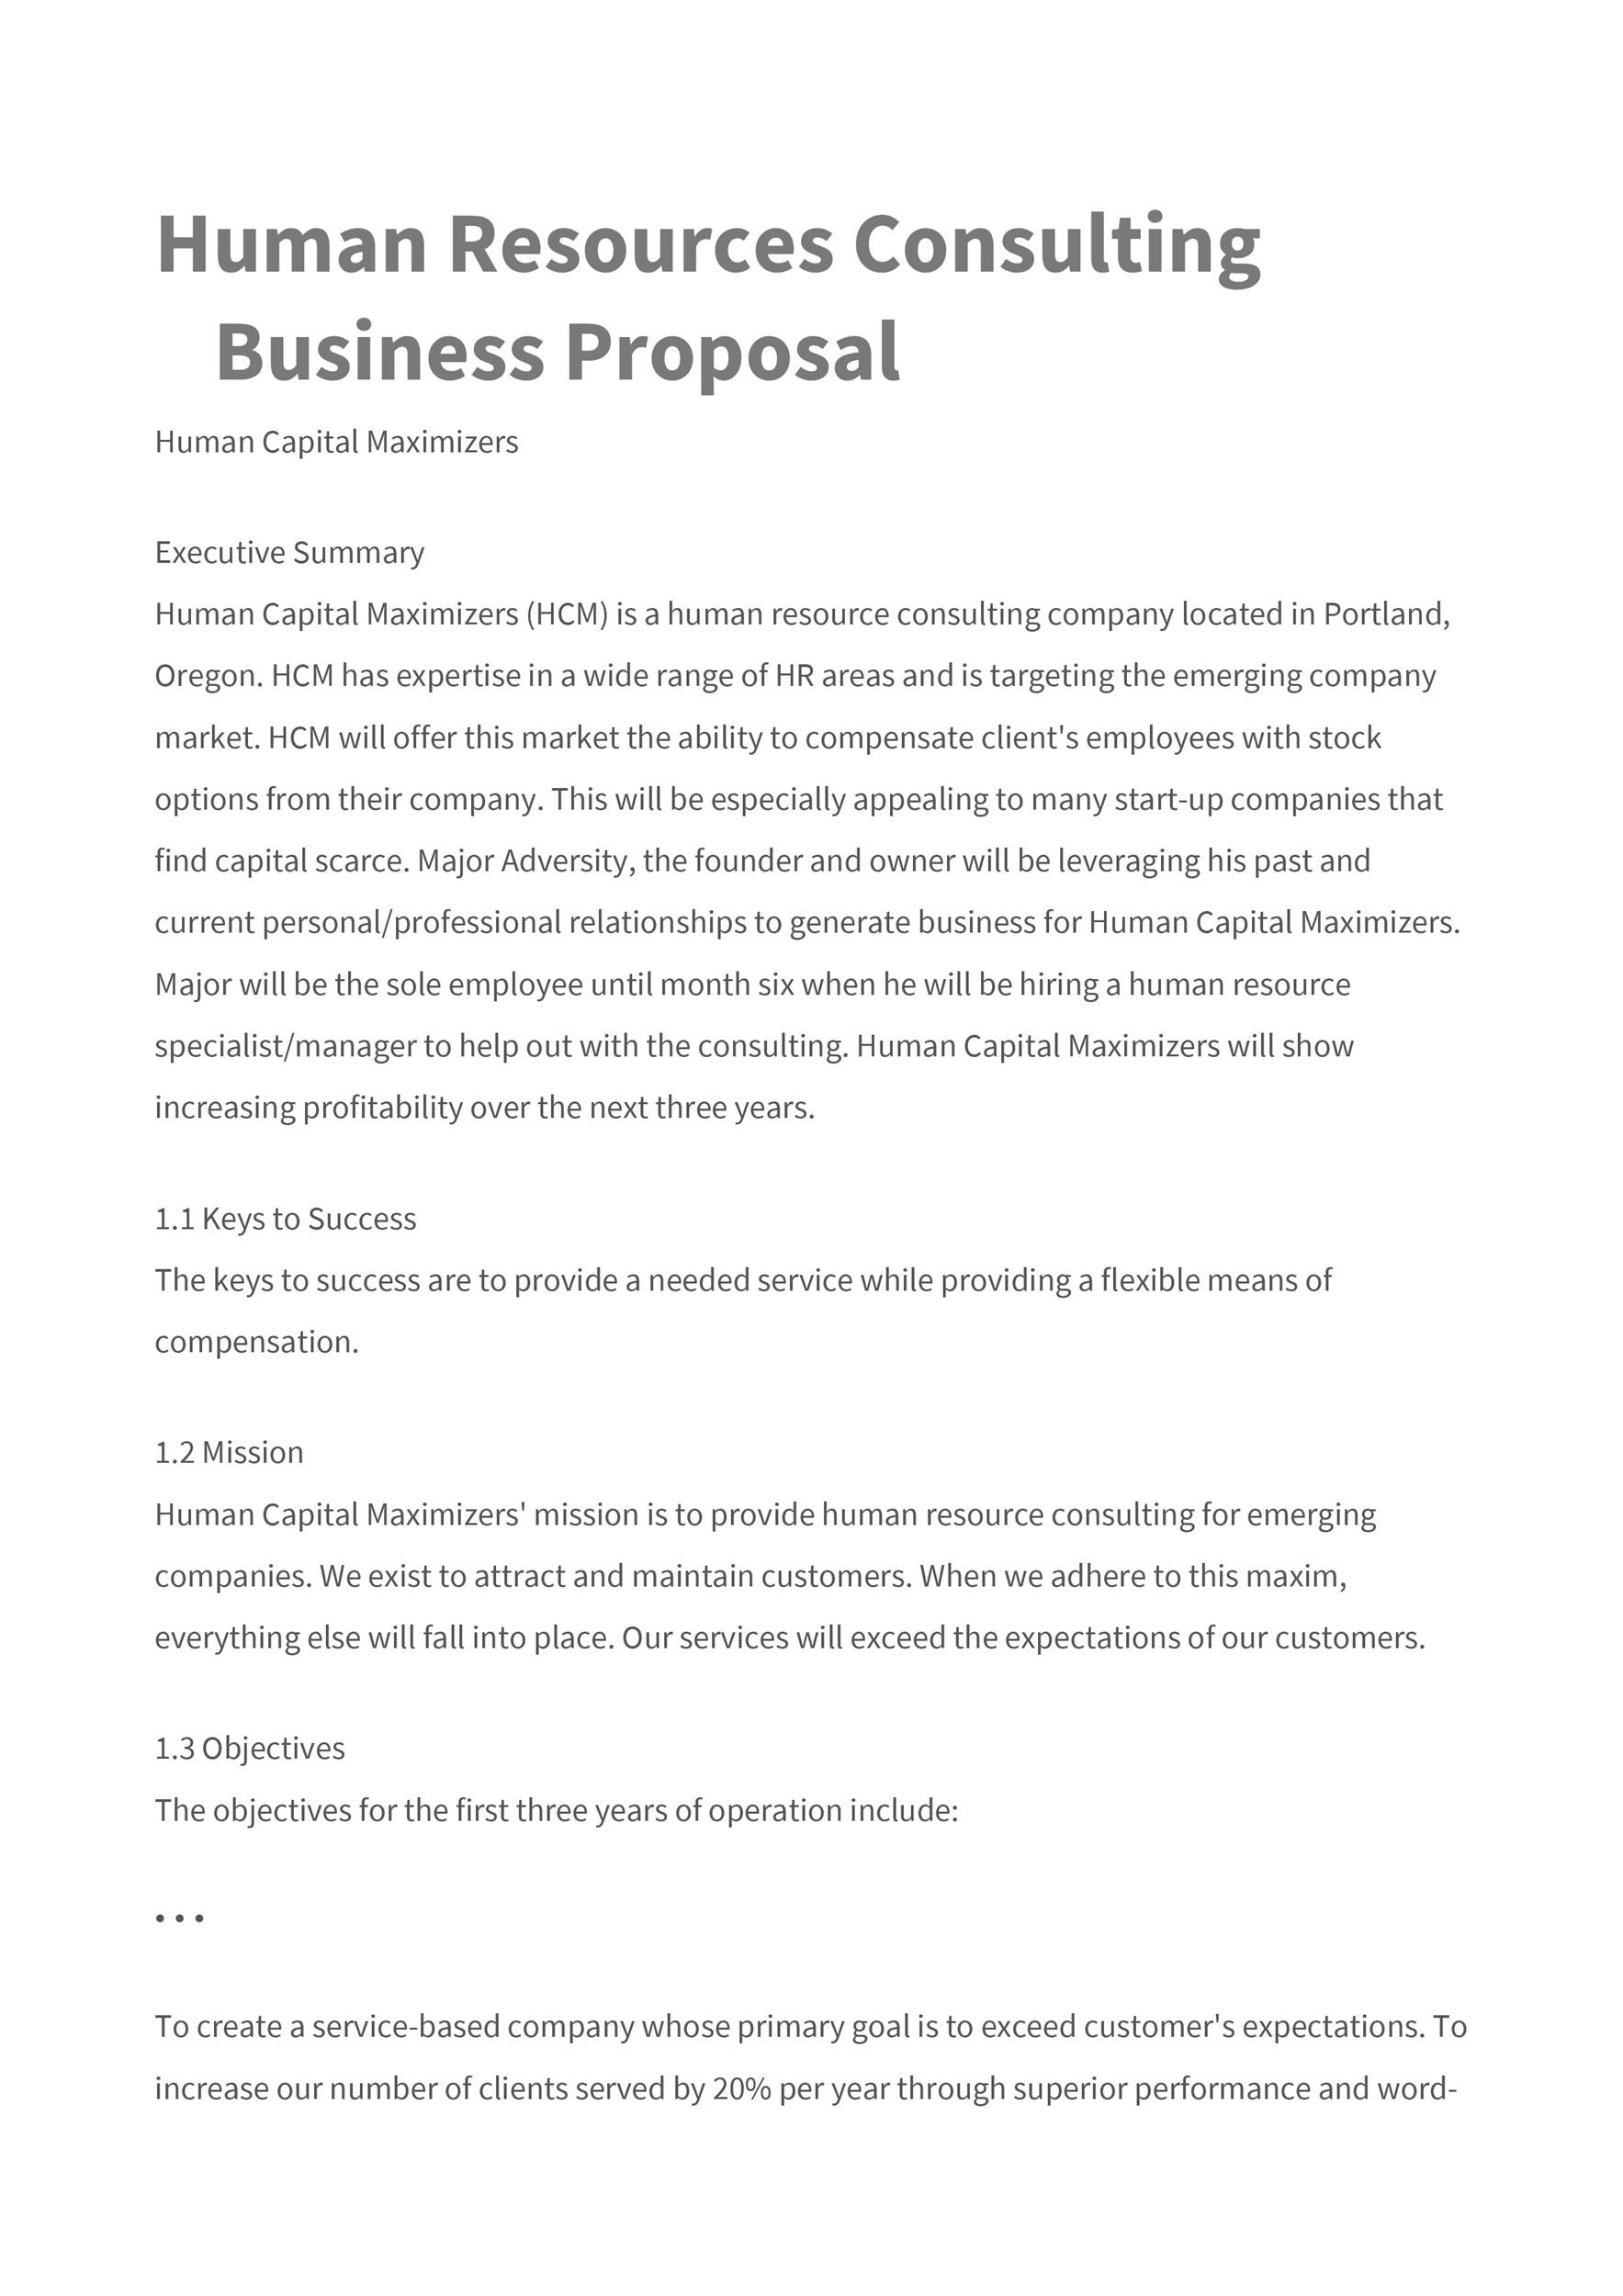 39 BEST Consulting Proposal Templates FREE ᐅ Template Lab